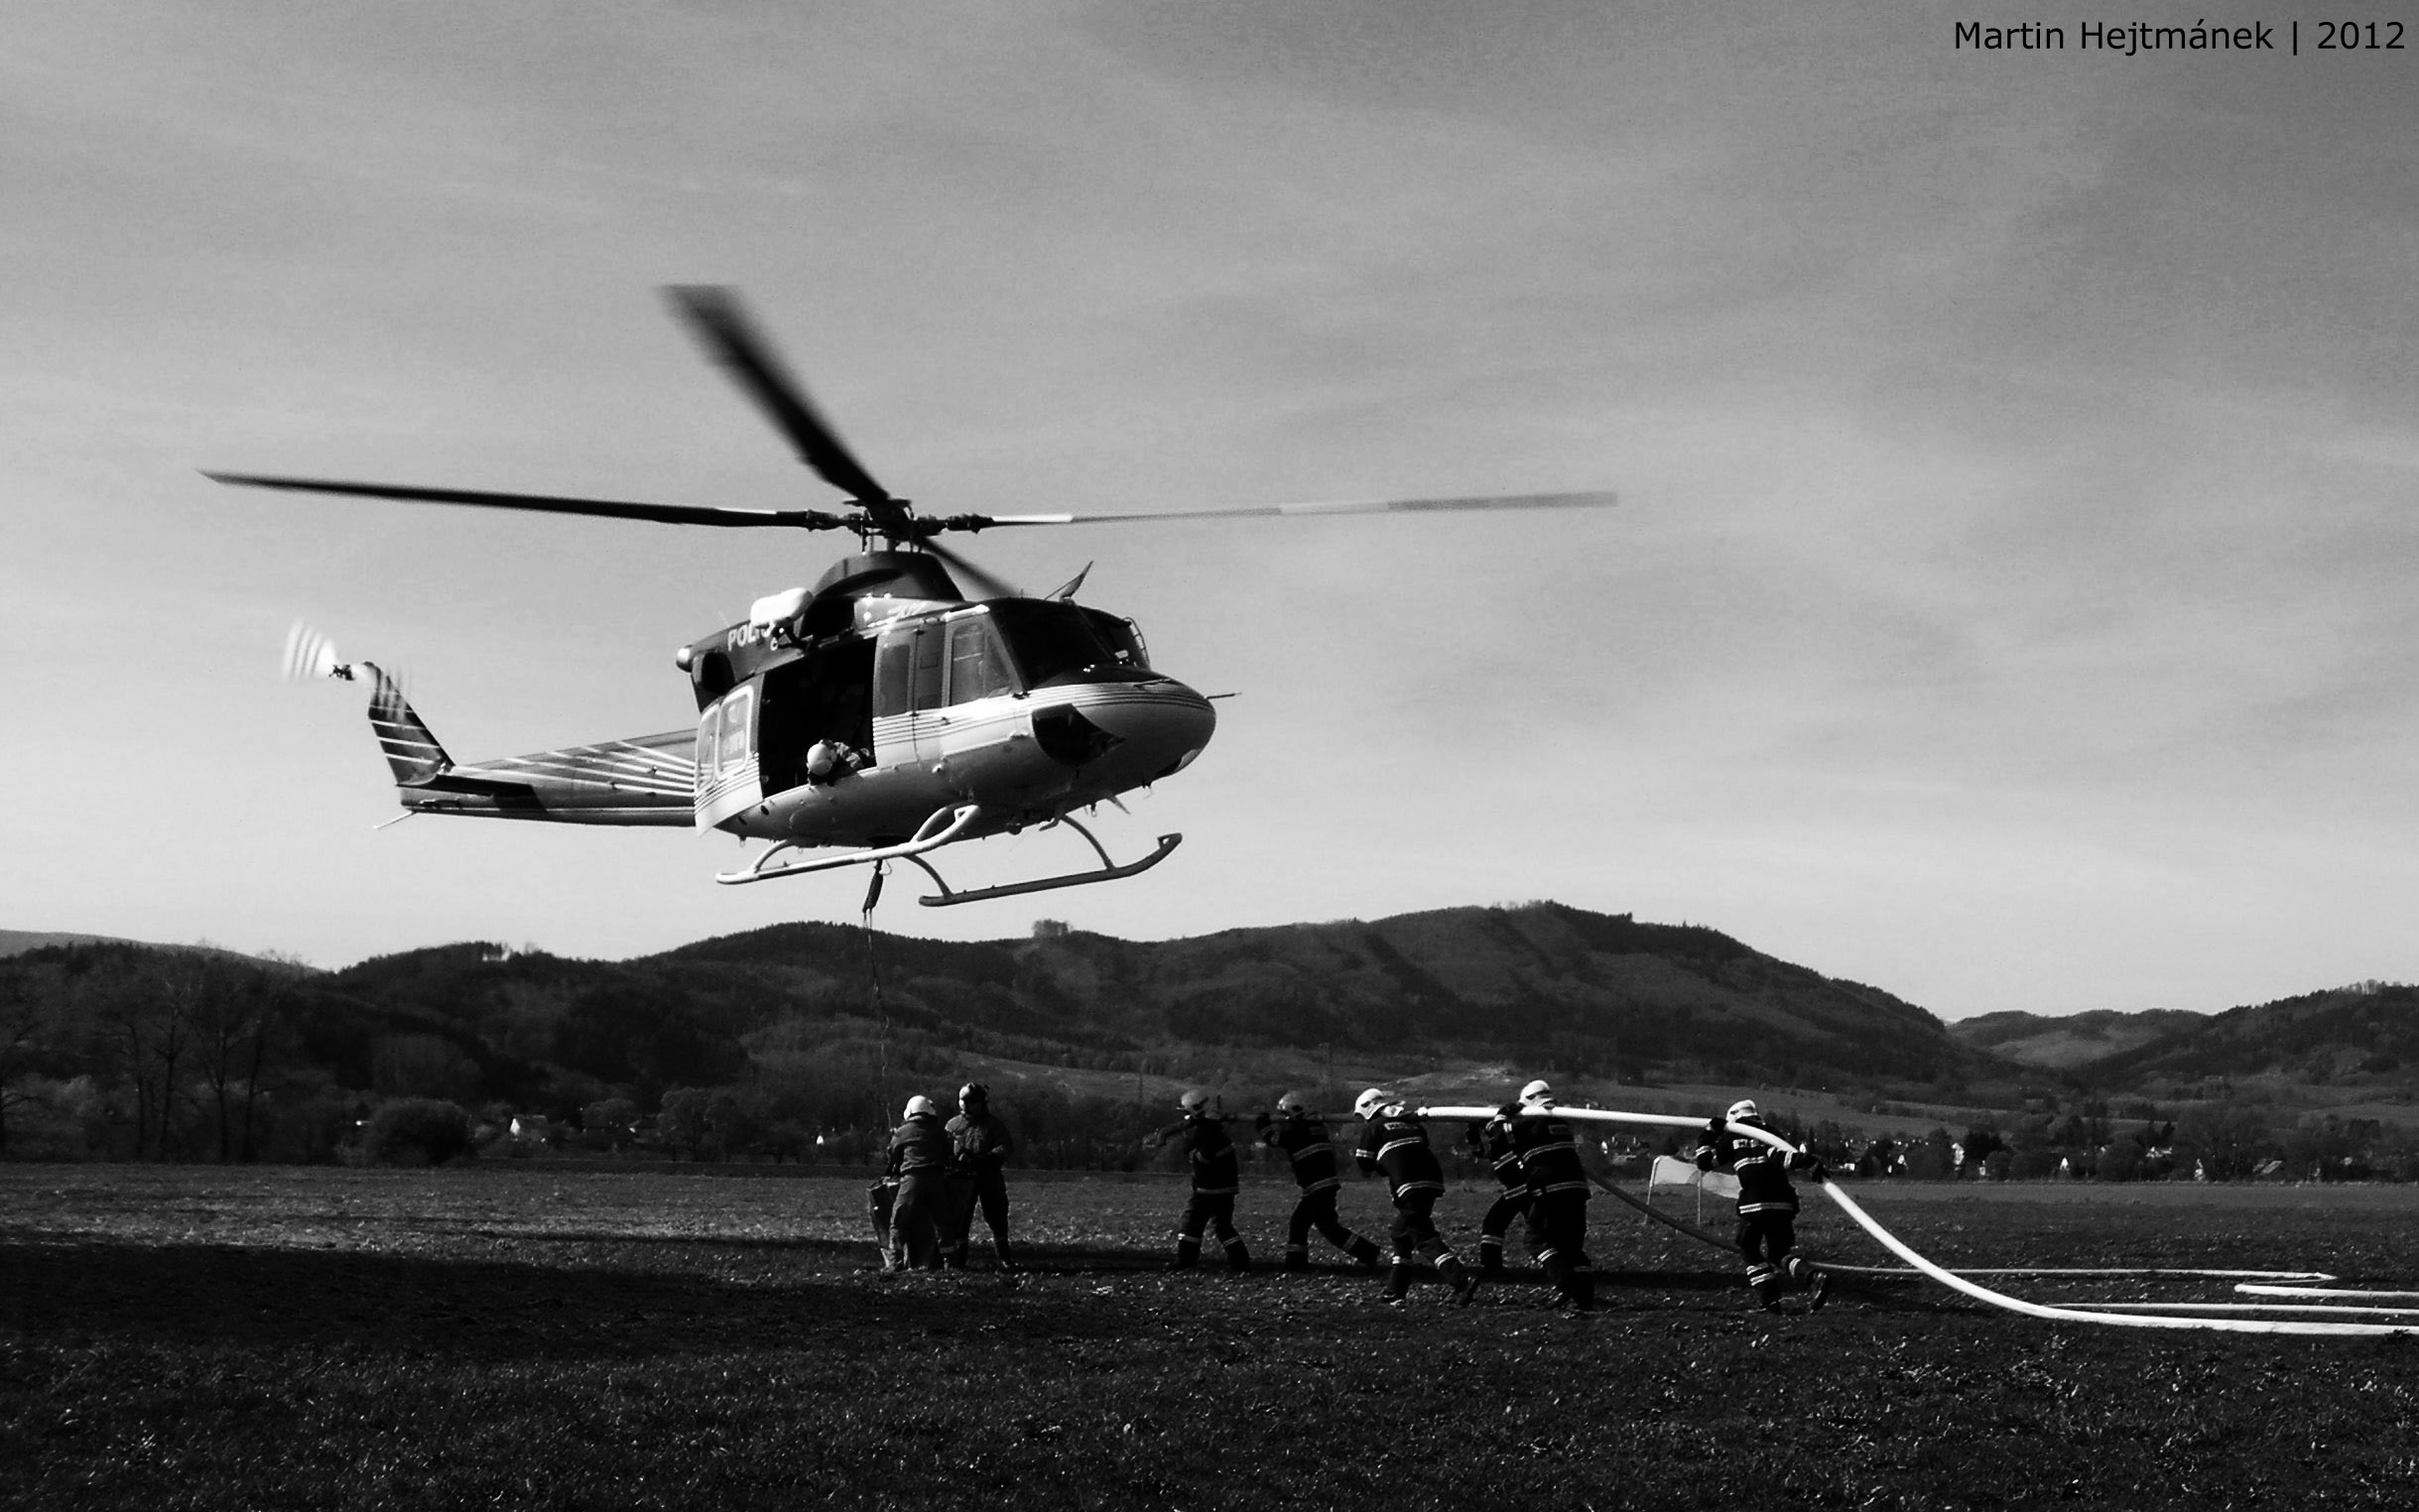 Bell 412 in firefighting action by H8me-CZ